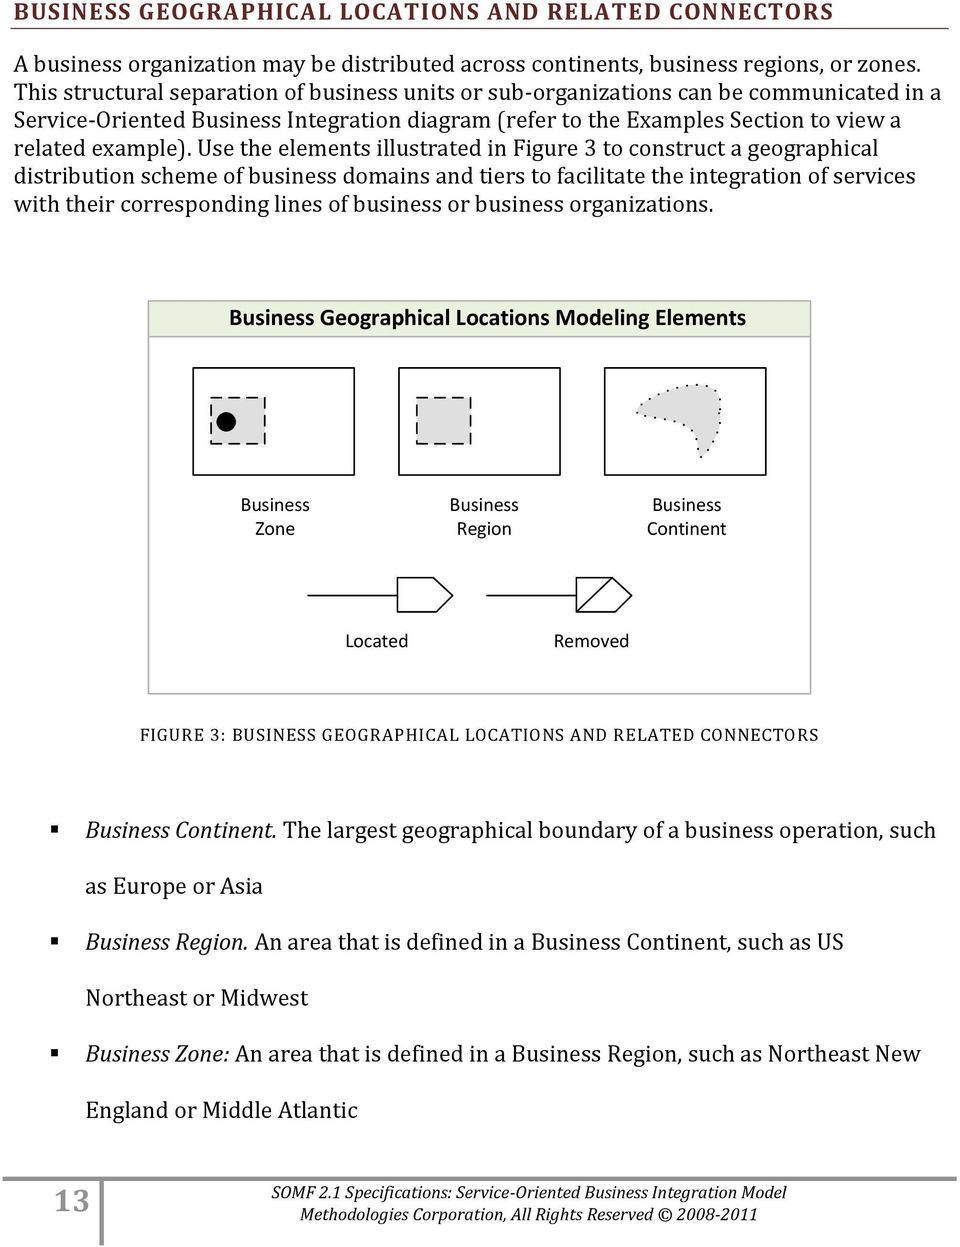 Use the elements illustrated in Figure 3 to construct a geographical distribution scheme of business domains and tiers to facilitate the integration of services with their corresponding lines of